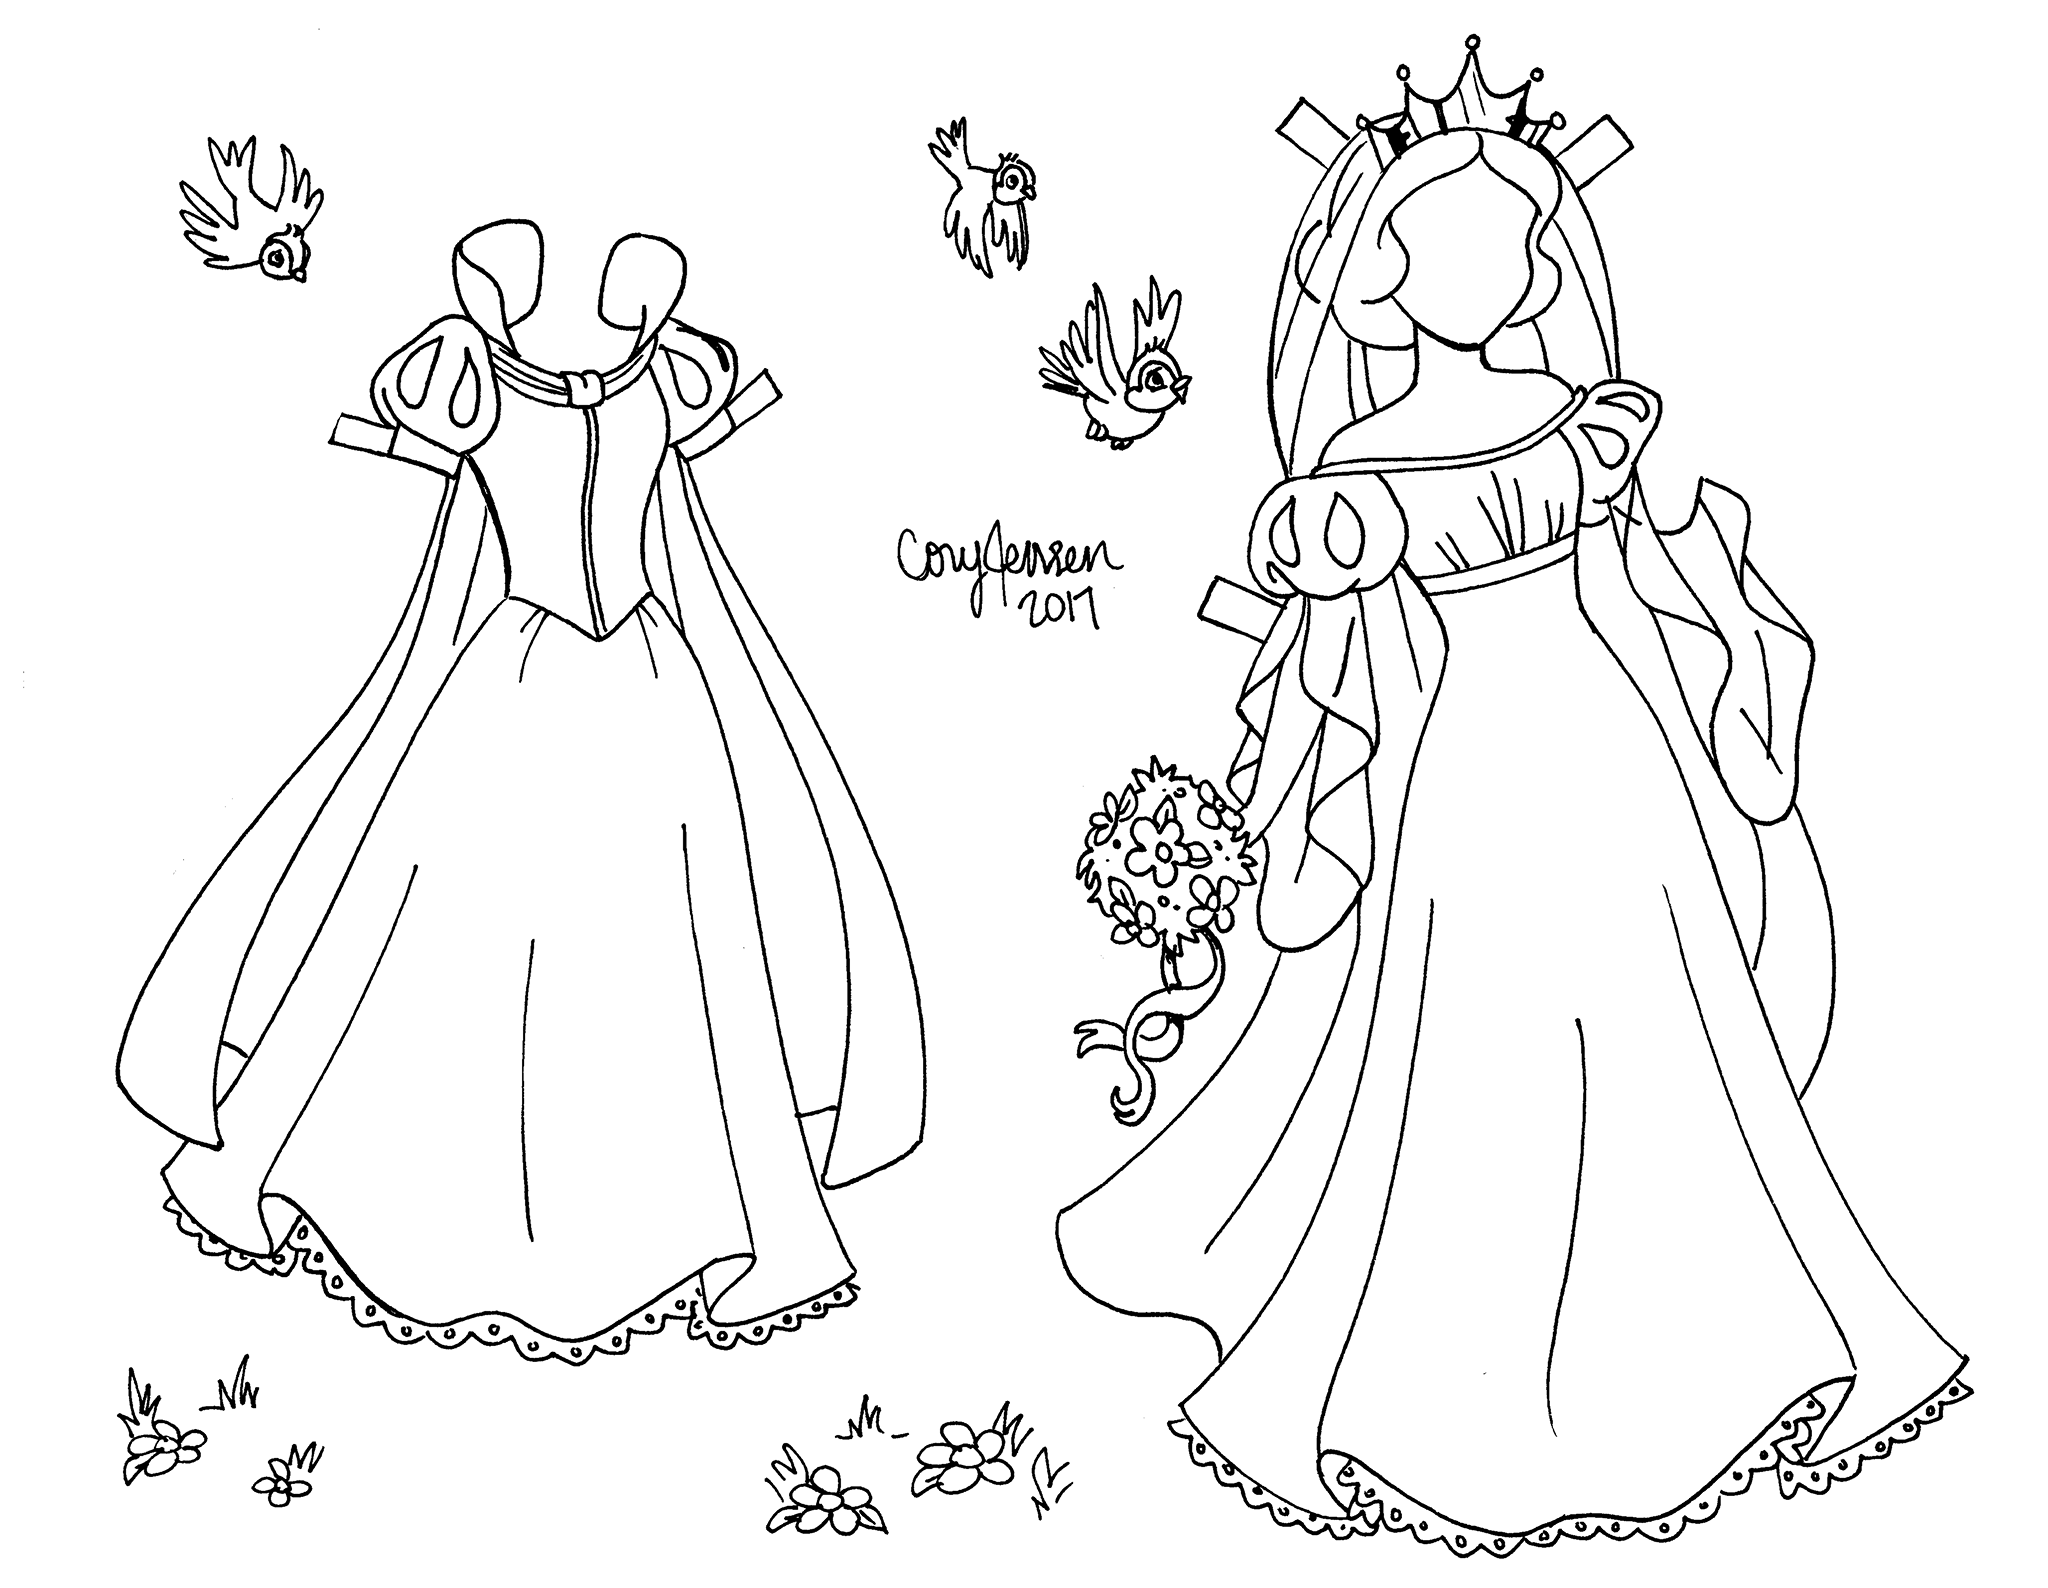 Snow White line art paper doll to color, by Cory Jensen (2